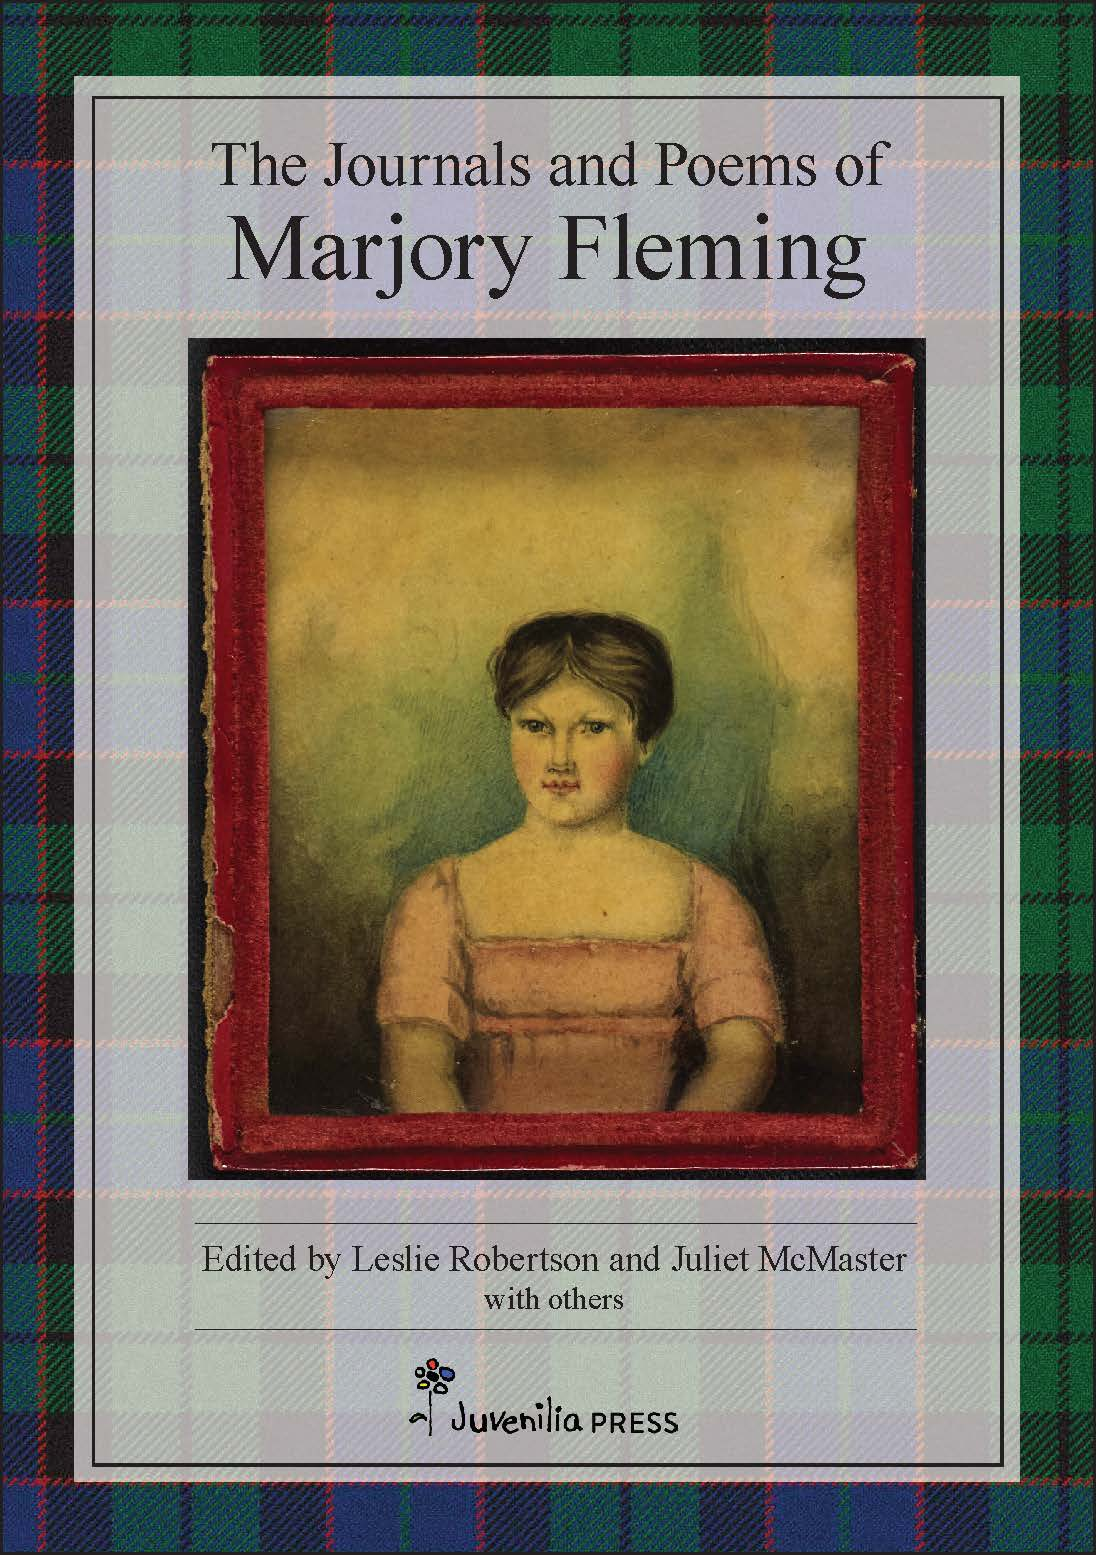 The Journals and Poems of Marjory Fleming